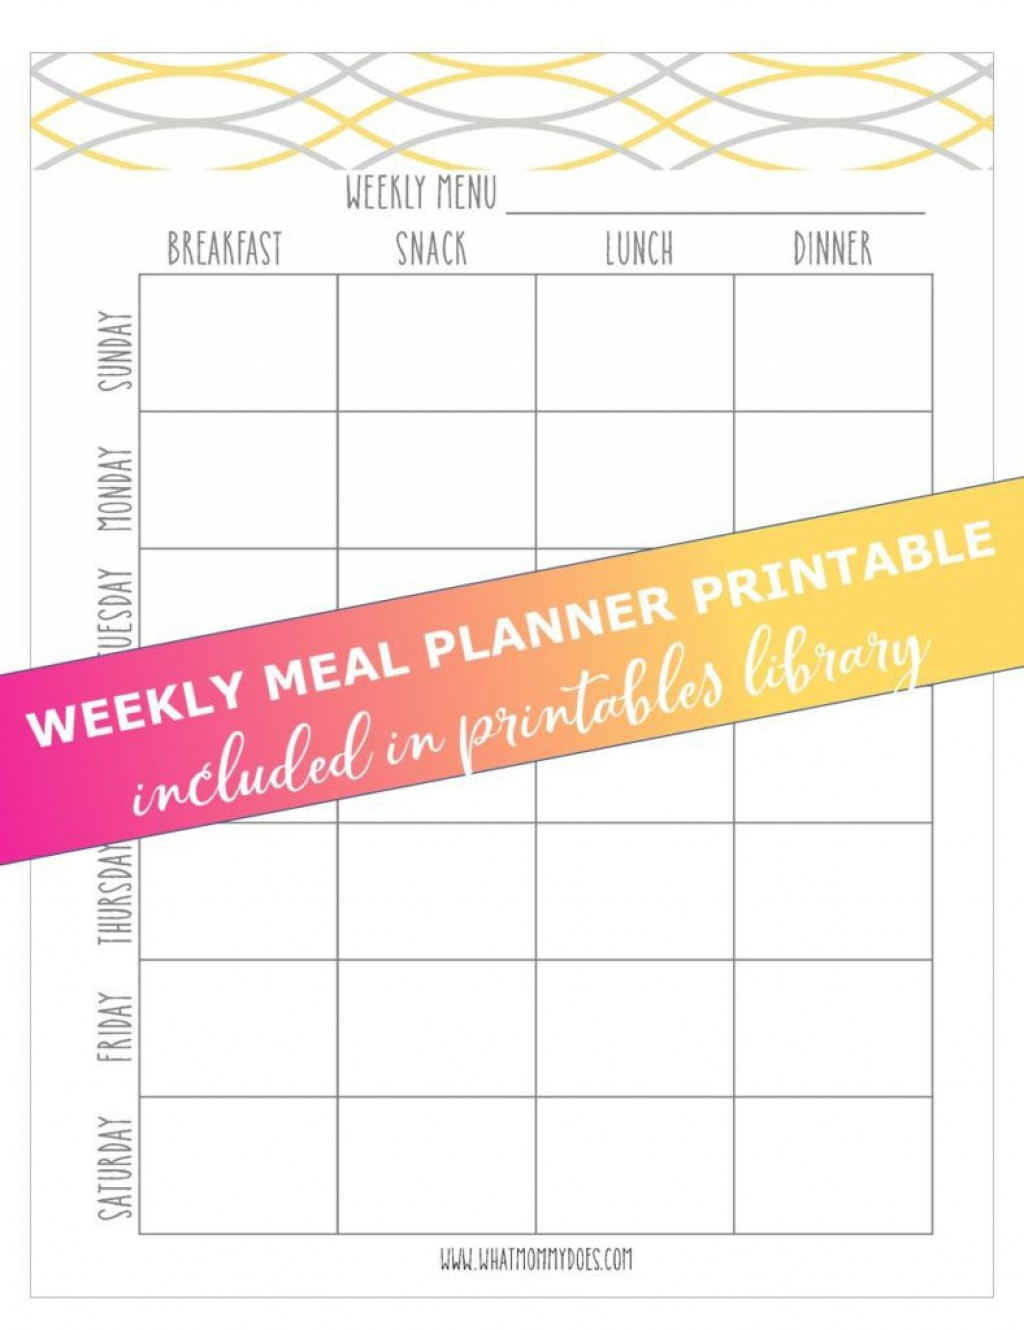 009 Unusual School Lunch Menu Template High Resolution  Monthly Free Printable BlankLarge